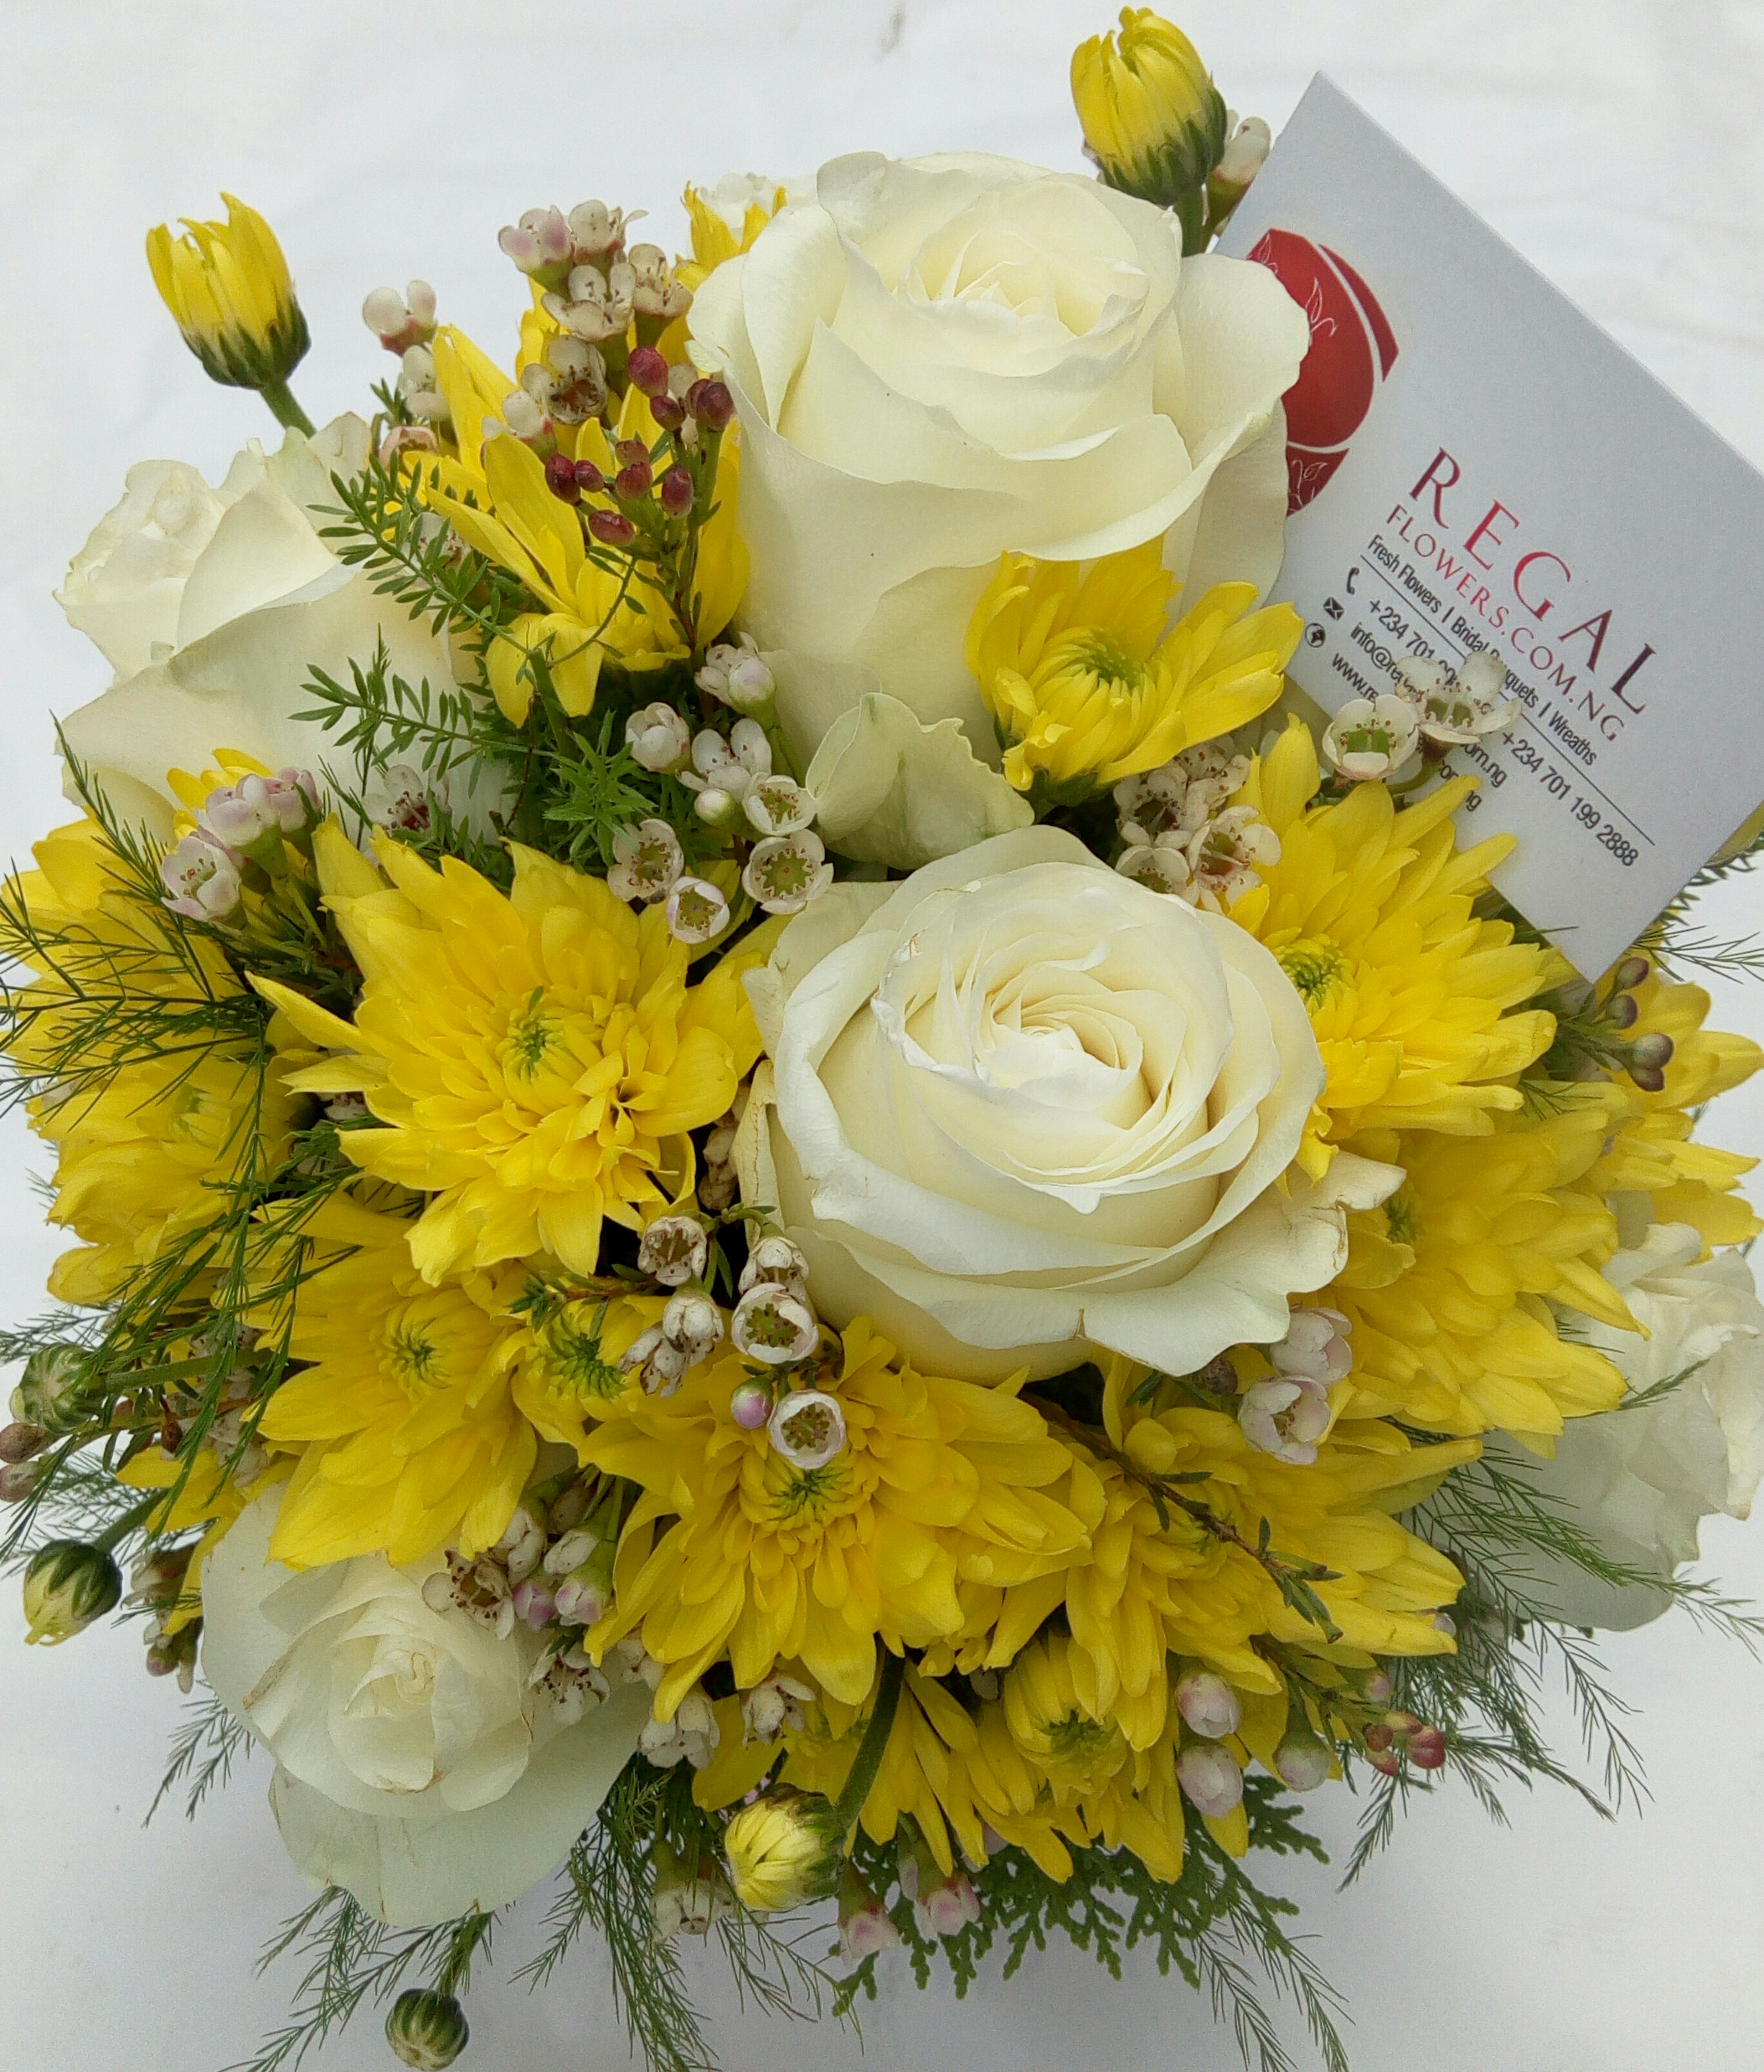 Dune Roses Yellow Chrysanthemum And Wax Statice Or Million Star